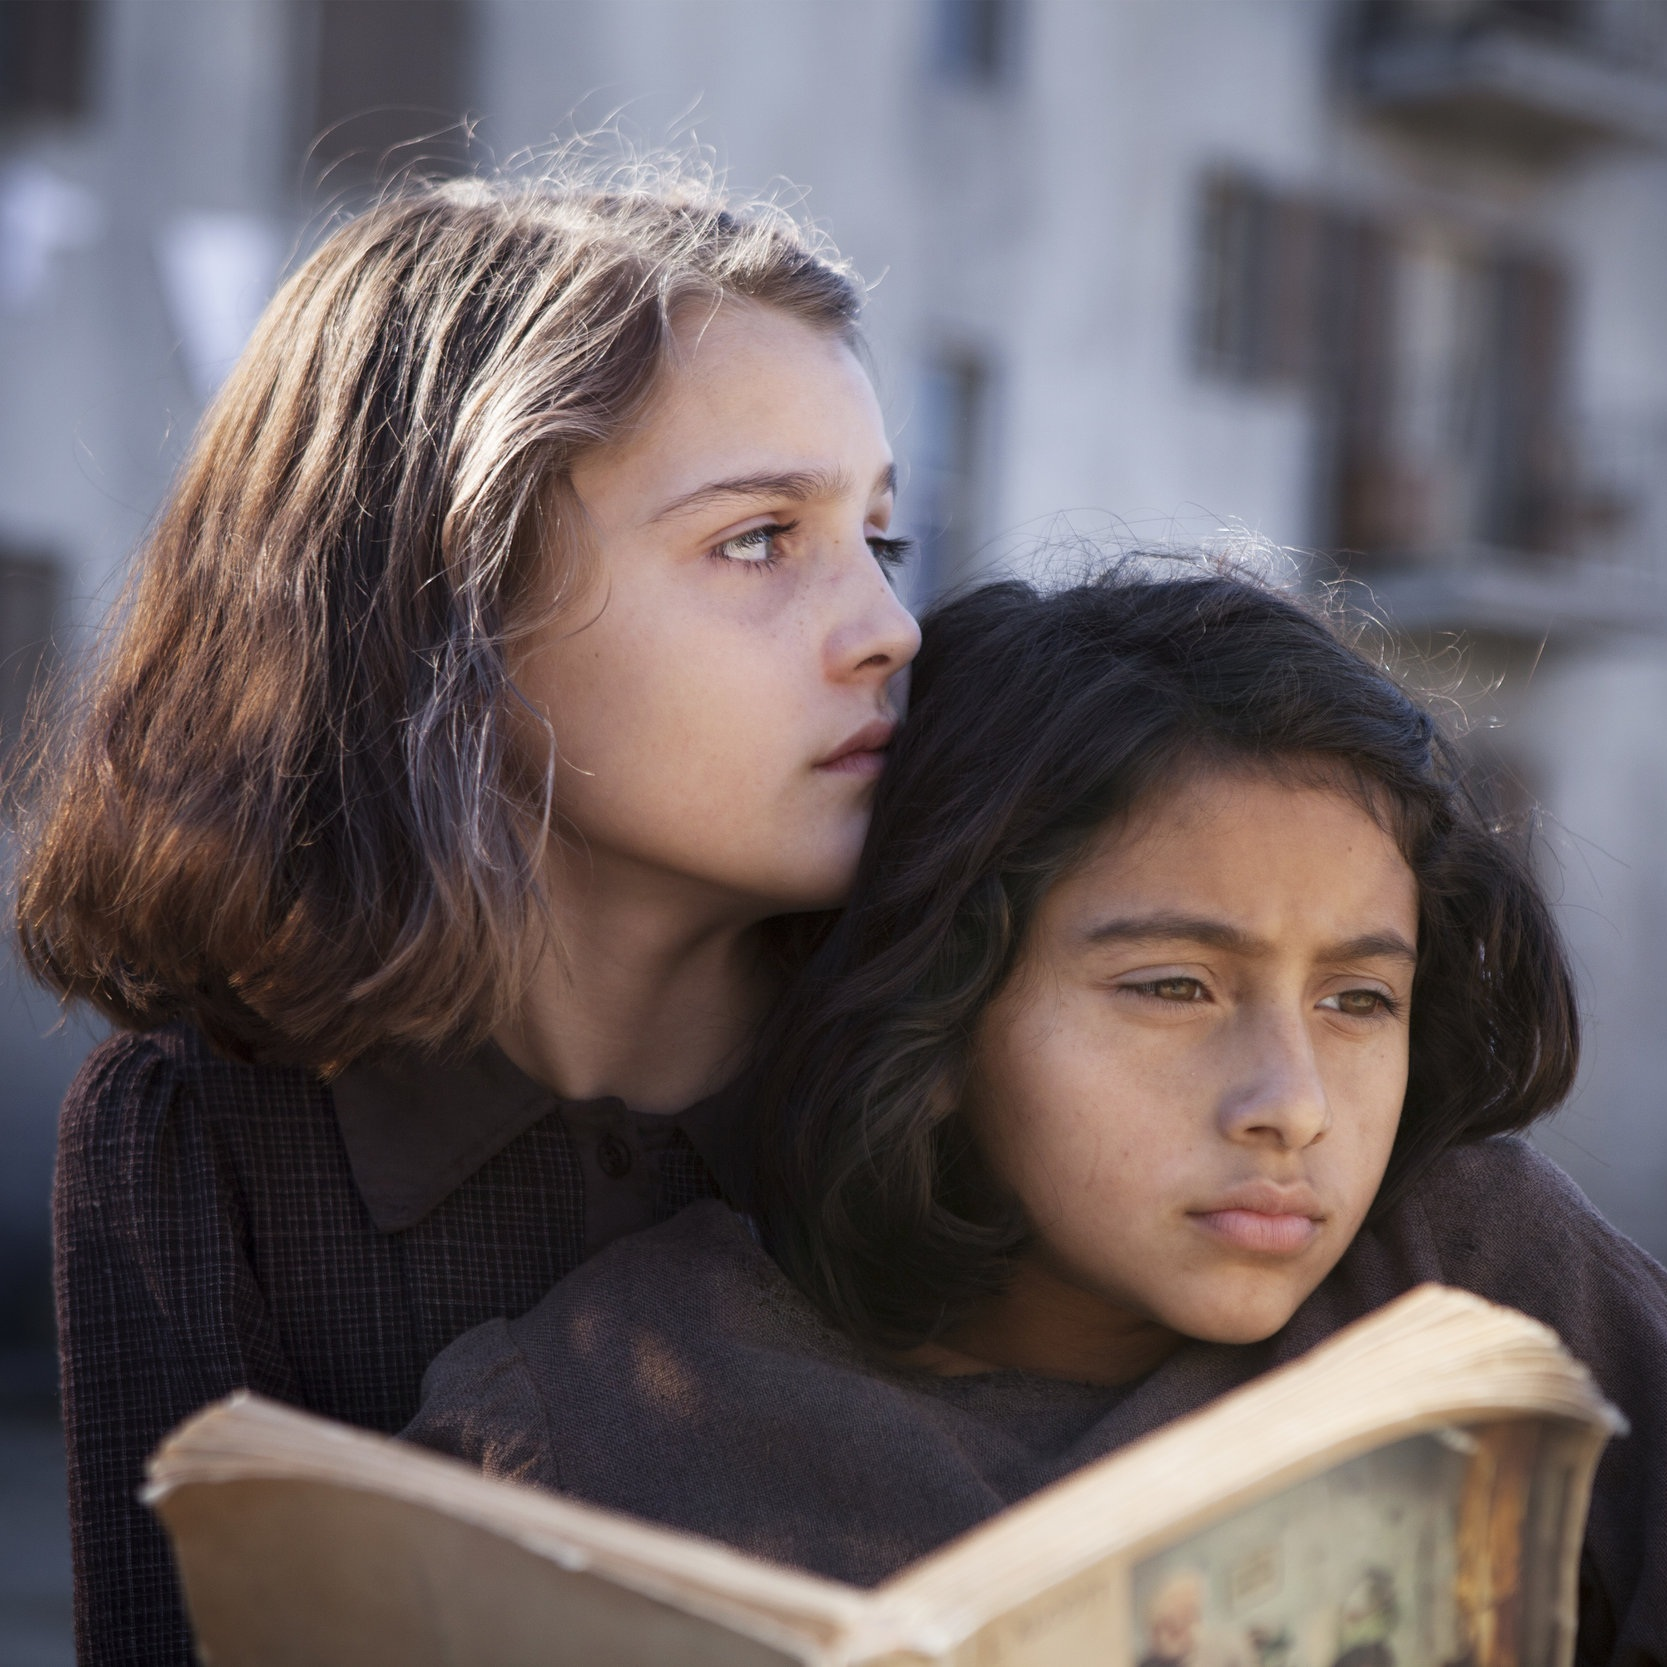 Elena Ferrante's saga of a friendship, My Brilliant Friend, begins on HBO